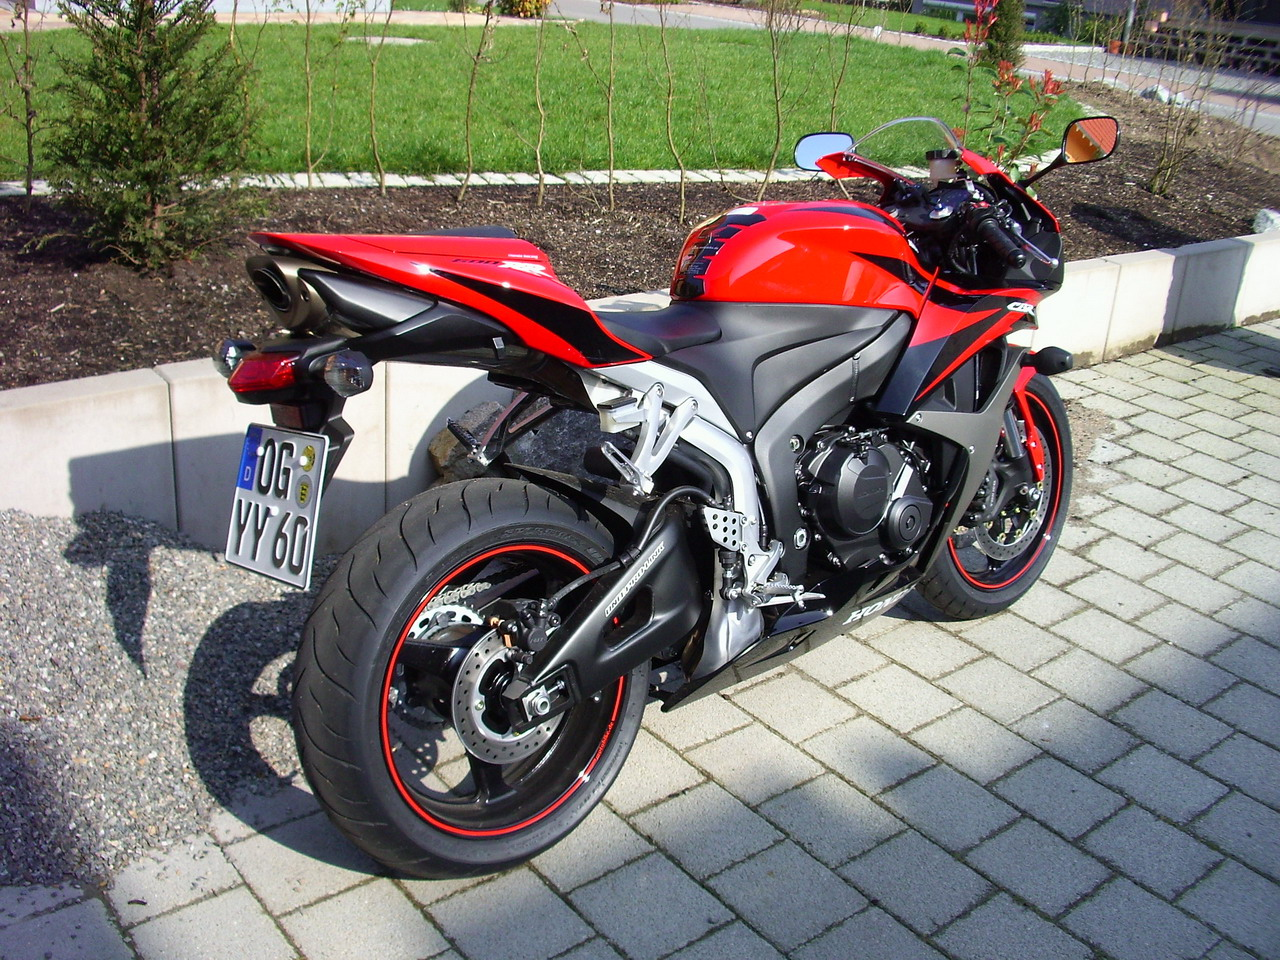 honda cbr 600 rr 15 honda cbr reihe cbr 600 rr pc40 von og yy 220 fahrzeuge 203203158. Black Bedroom Furniture Sets. Home Design Ideas